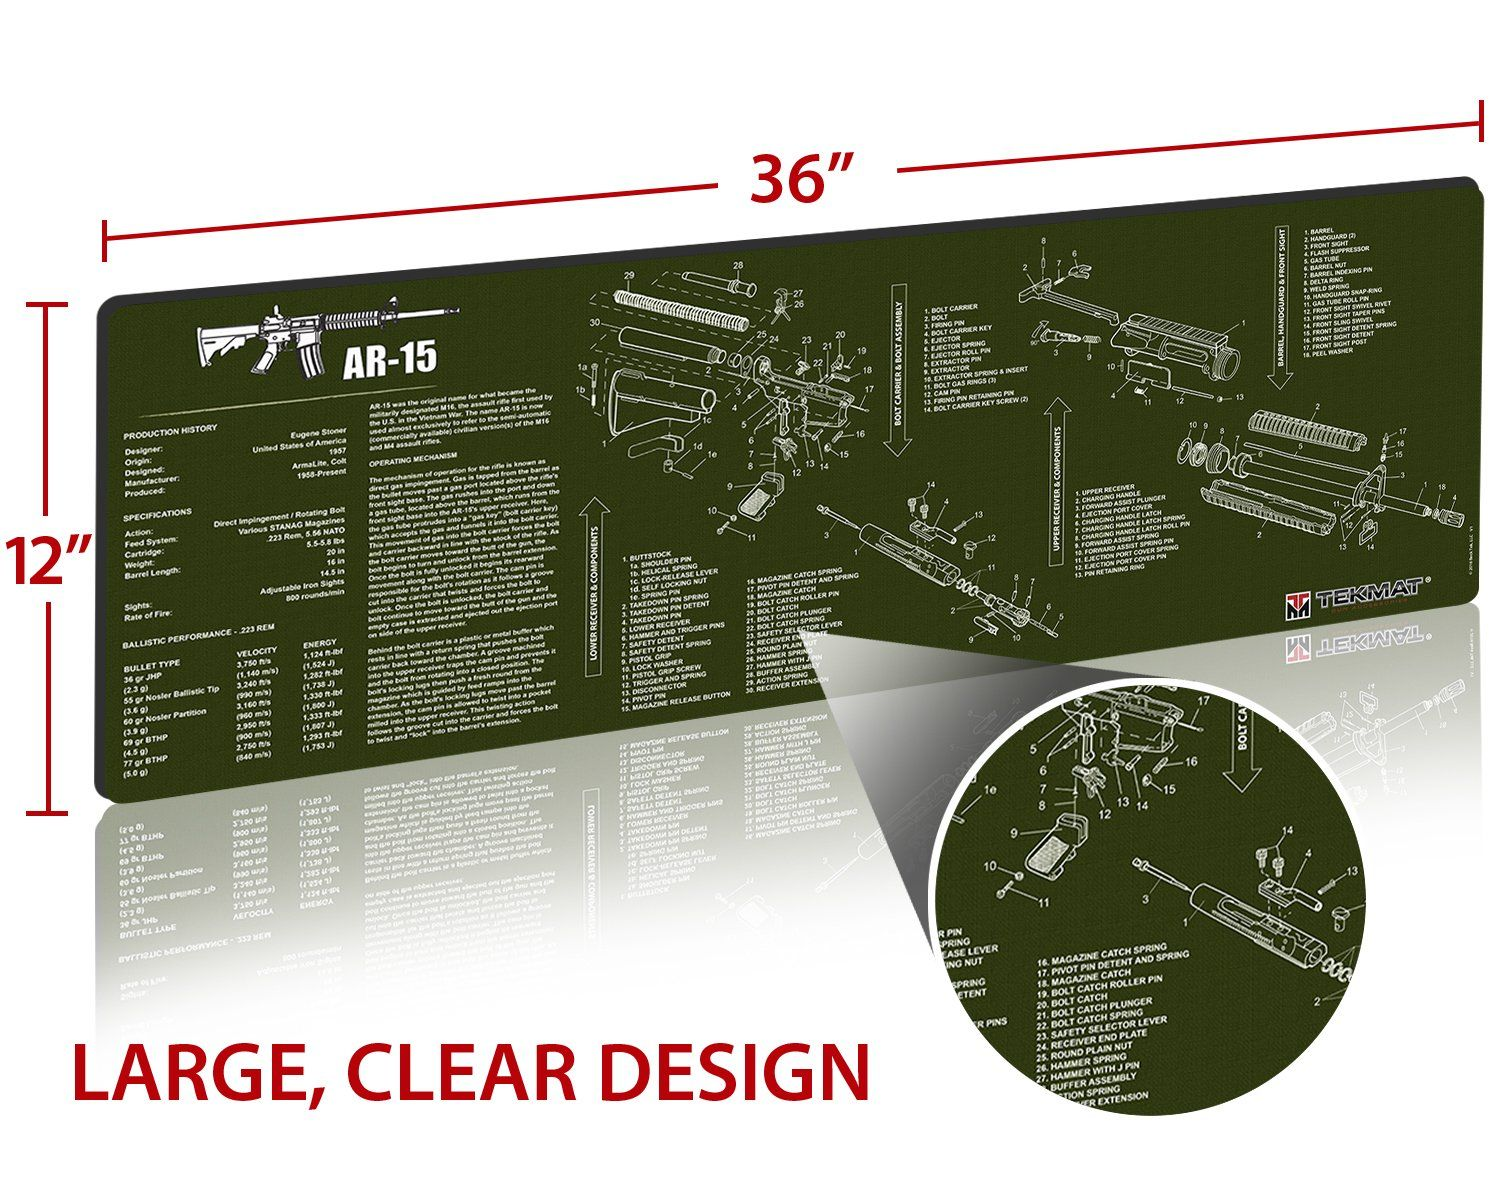 small resolution of tekmat ar15 cleaning mat 12 x 36 thick durable waterproof long gun cleaning mat